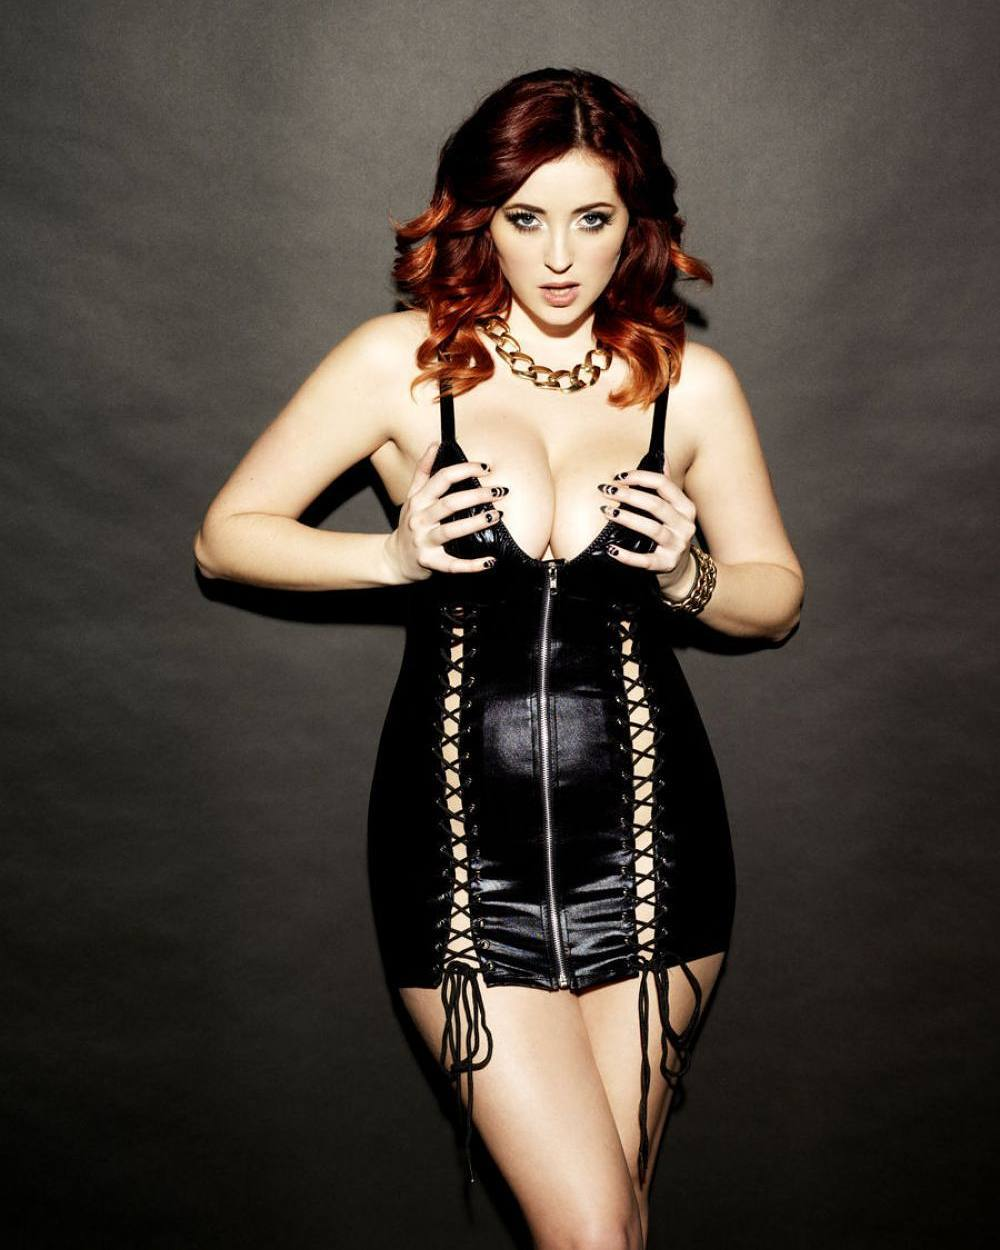 Lucy Collett Hot in Black Lingerie